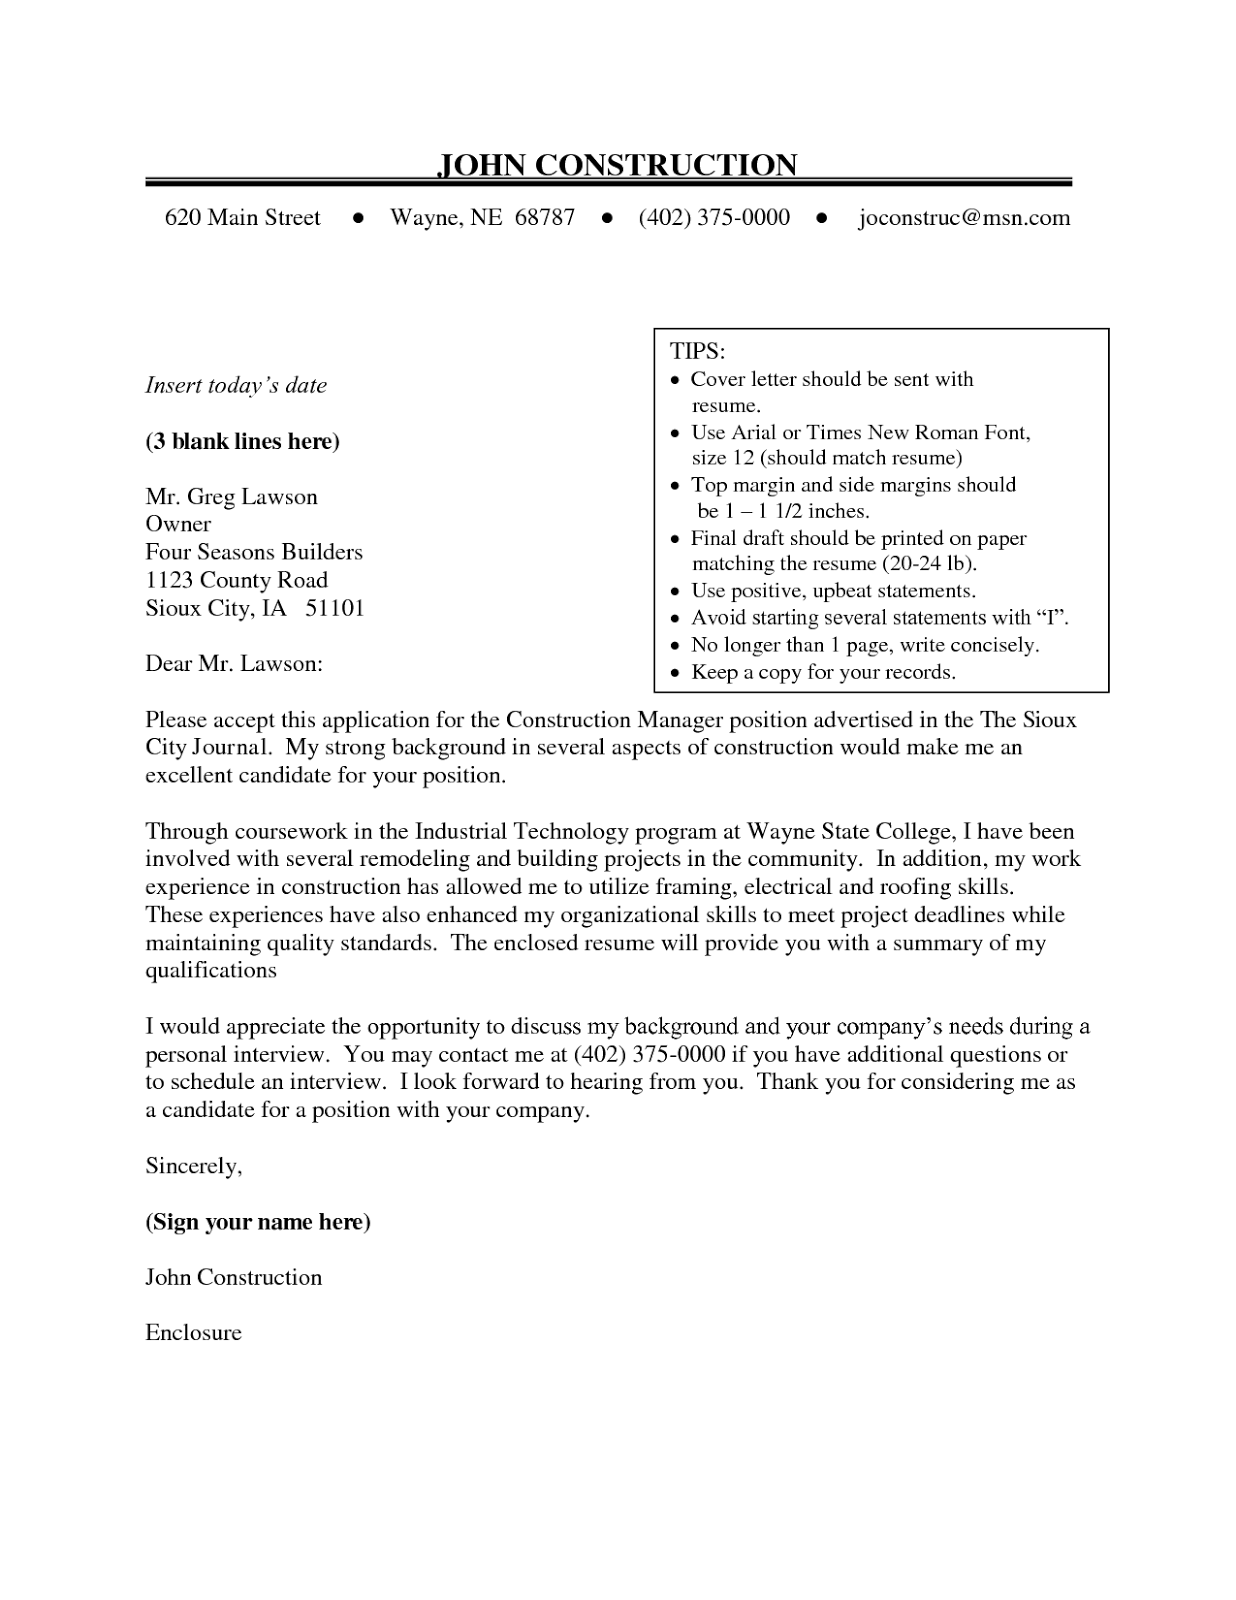 resume covering letter samples free resume cover letter example ...